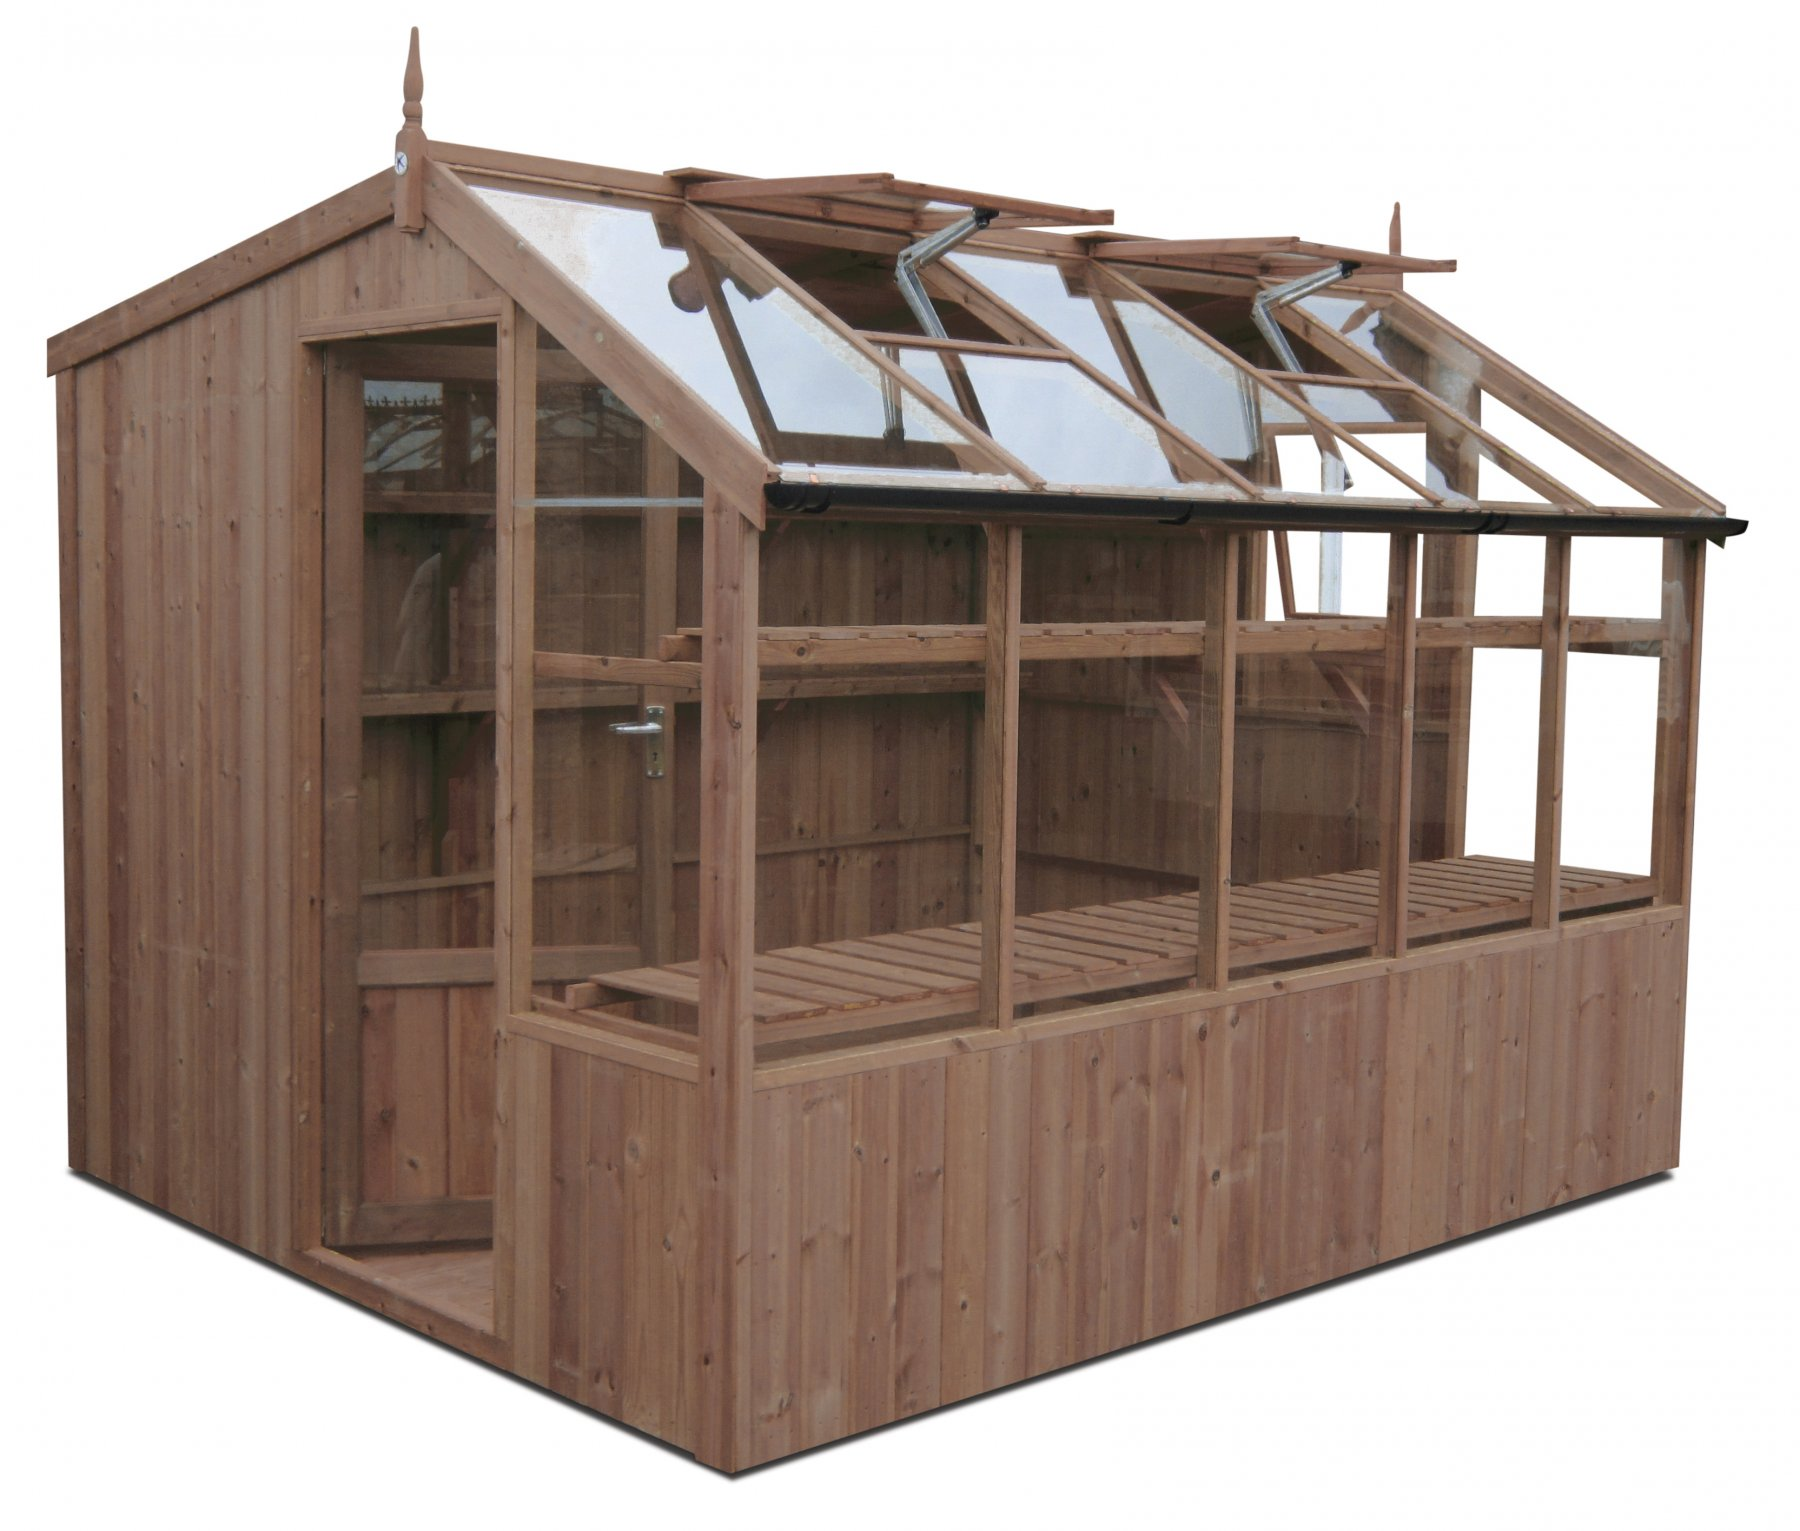 cheshire tanalised sheds products solar shed garden buildings greenhouses potting